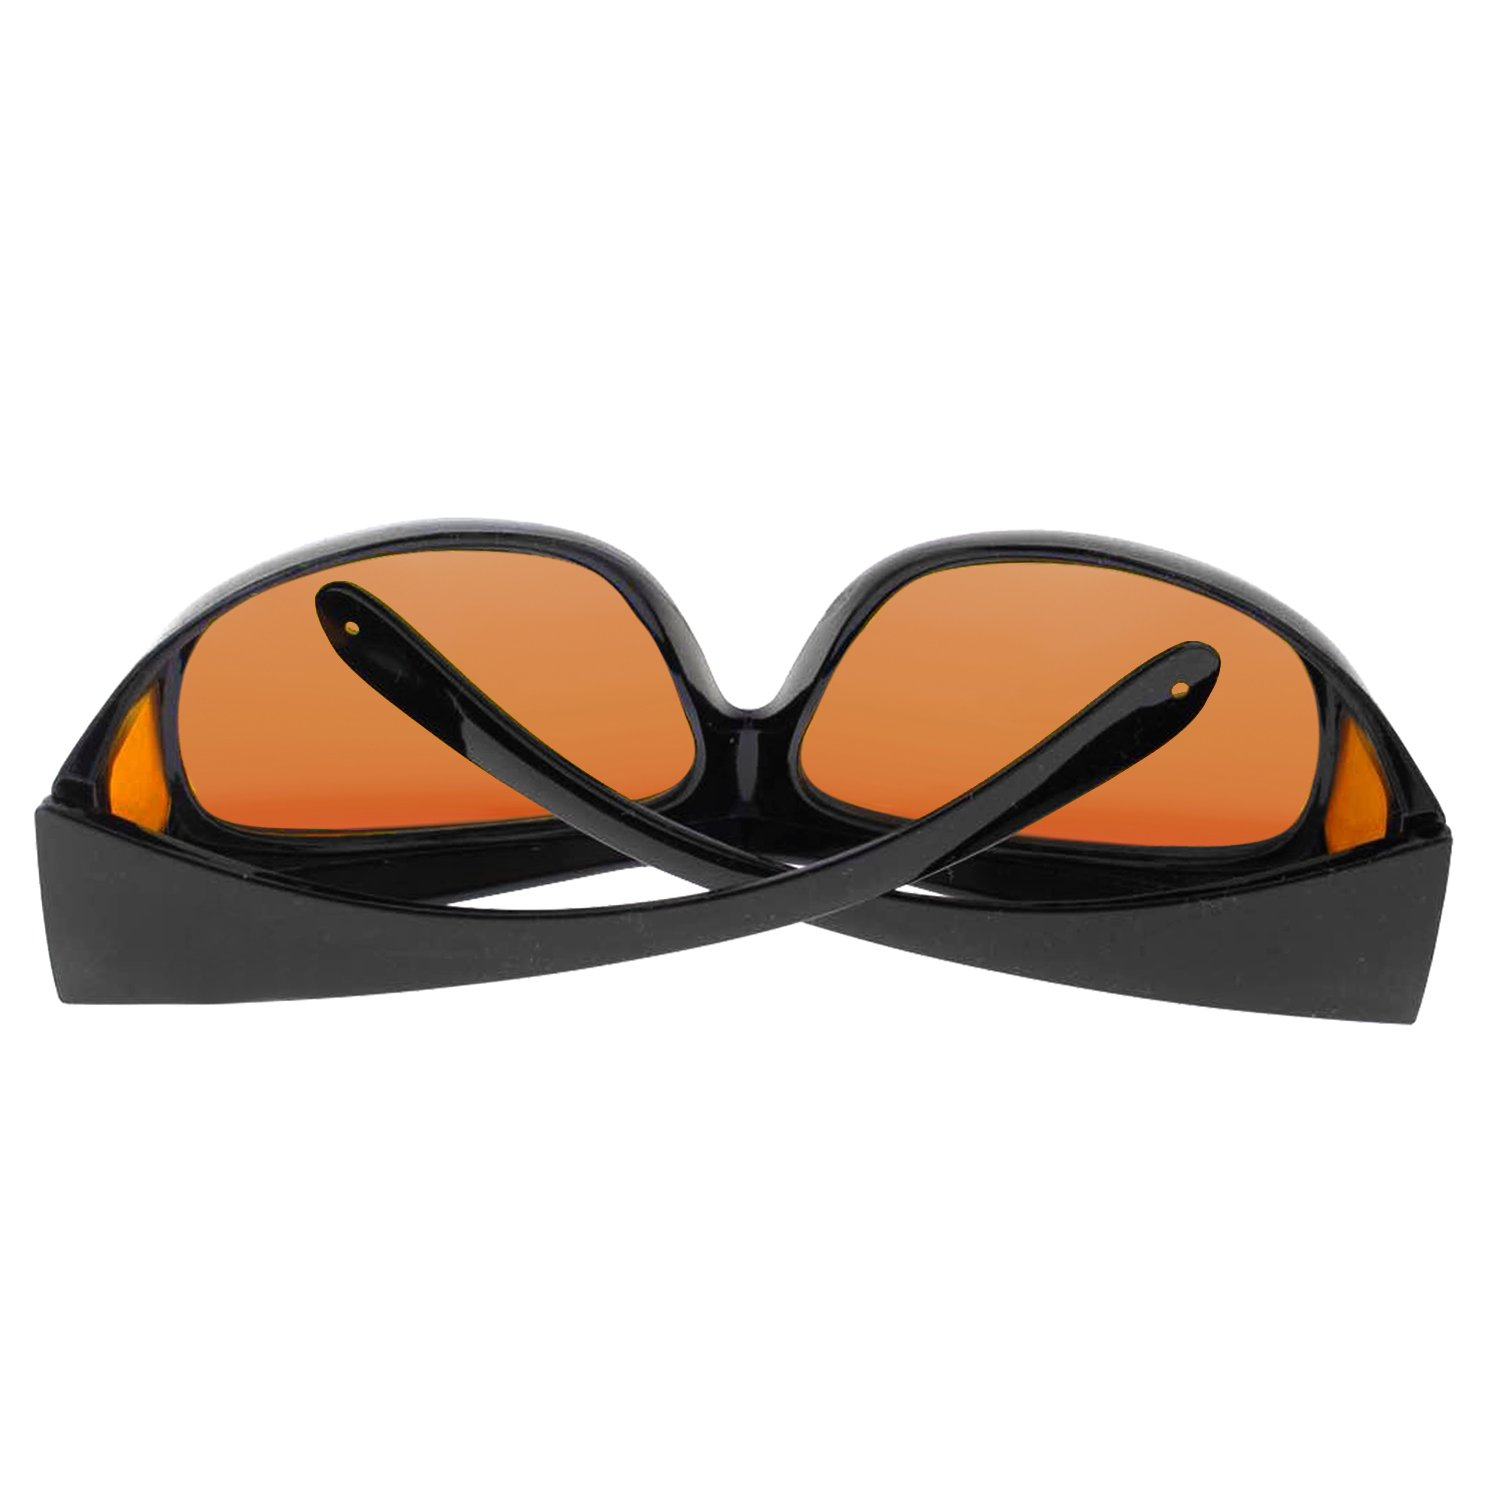 Amazon.com: Acme HD Vision Wraparound anteojos de sol Wear ...